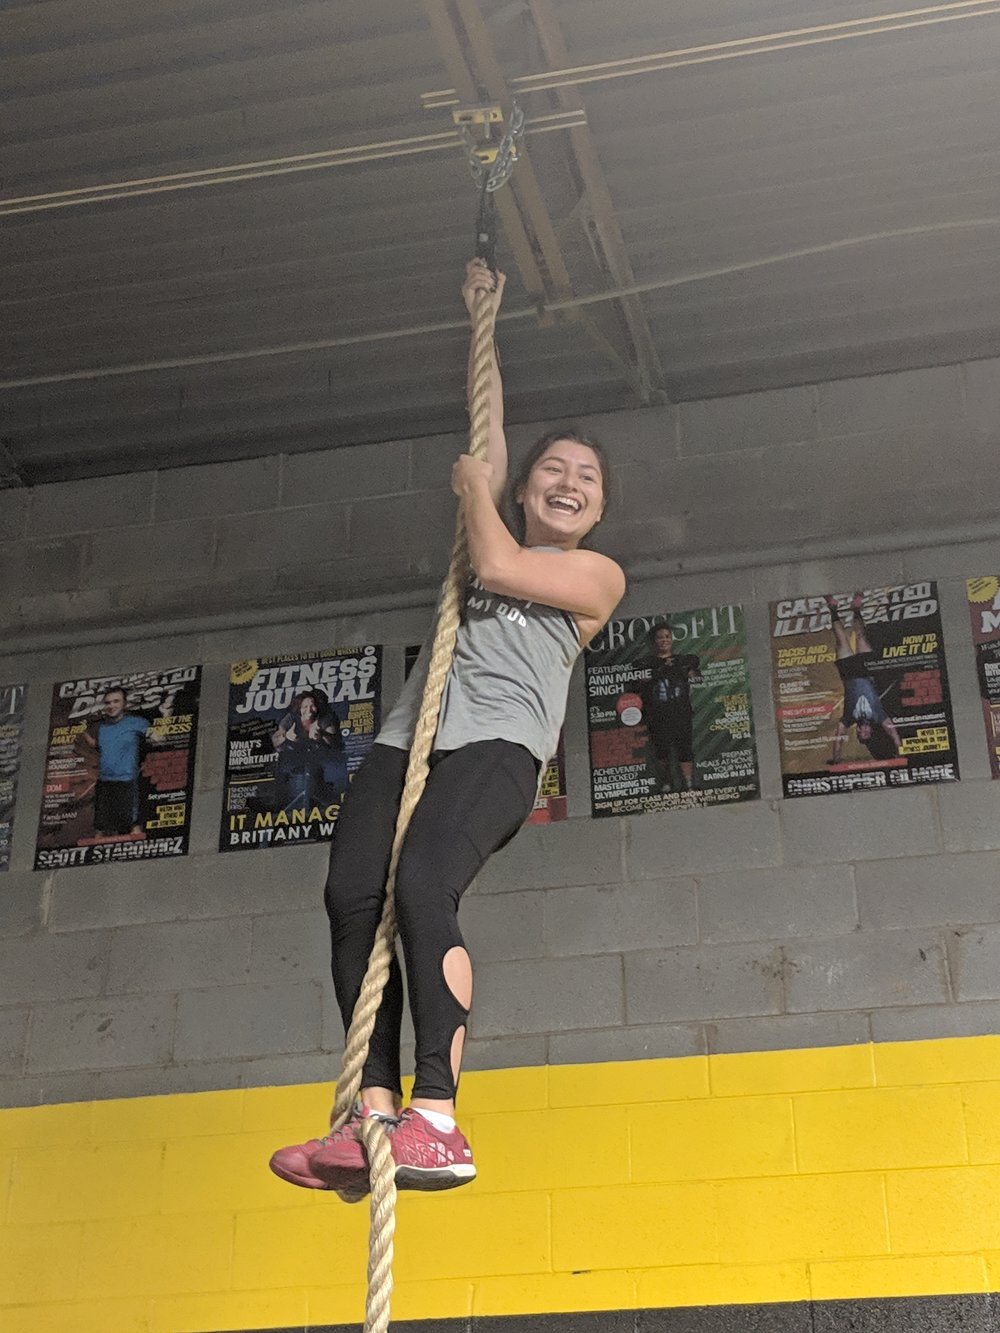 First Rope Climb!